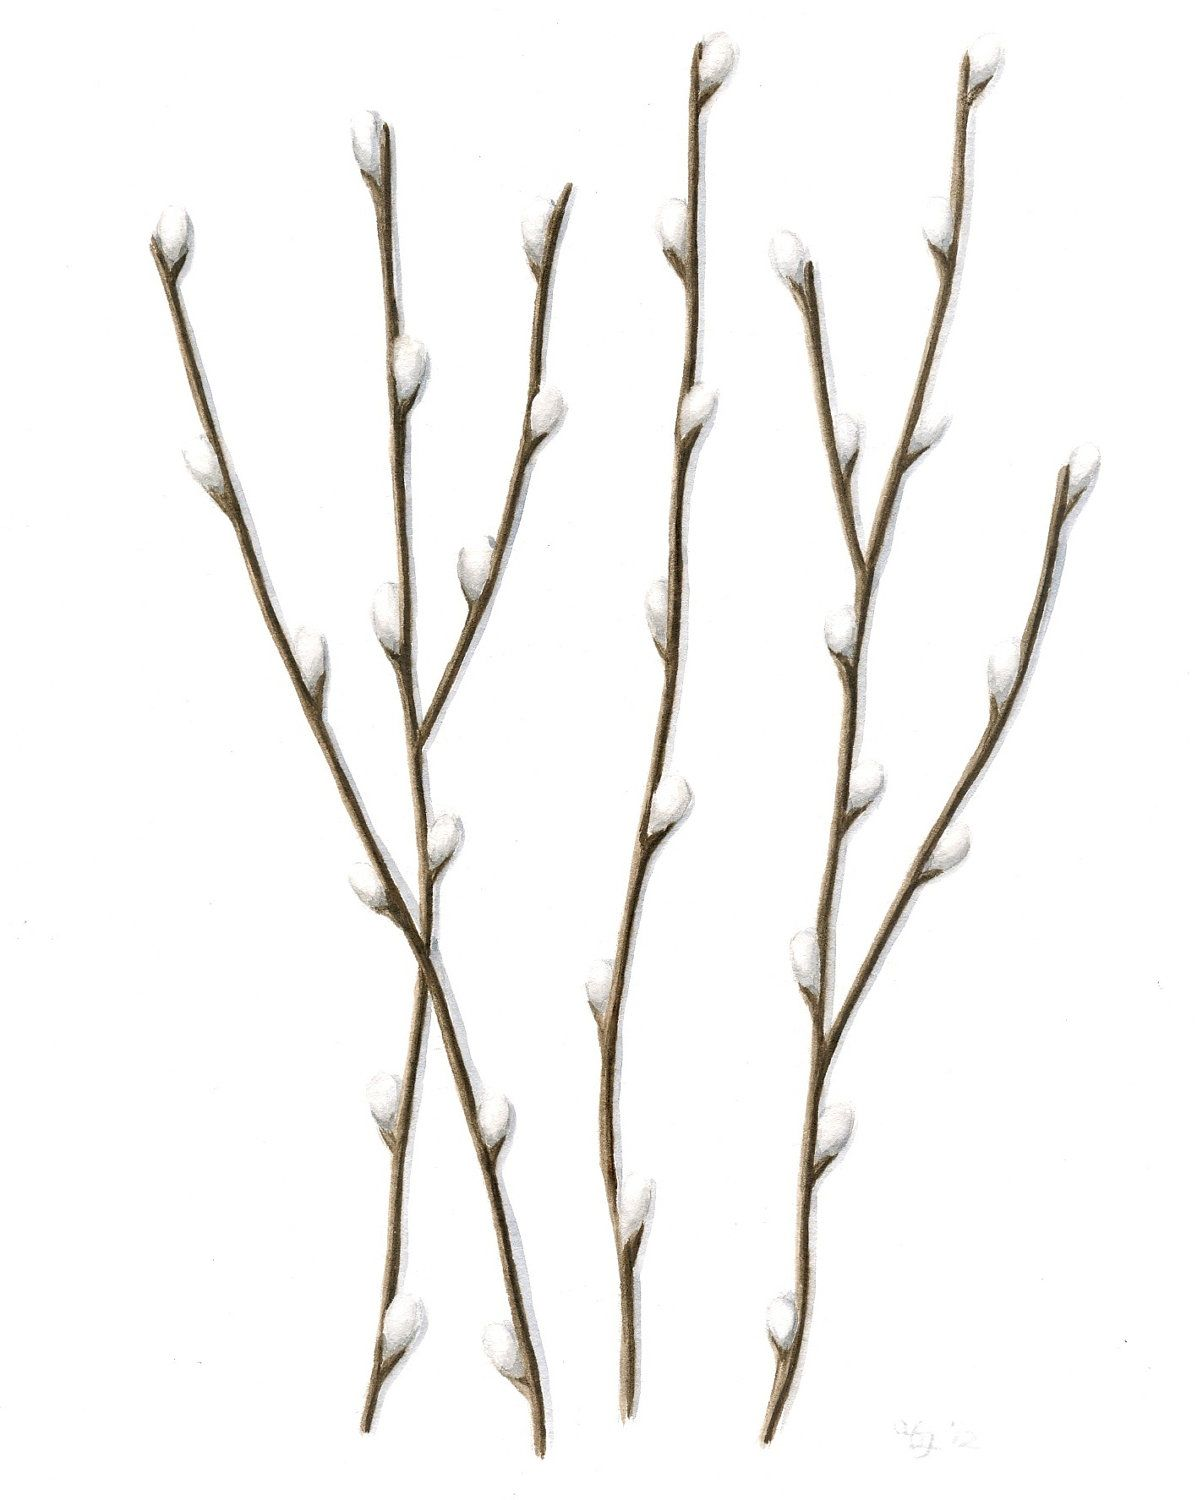 Original Watercolor Painting, Pussywillow Branches.